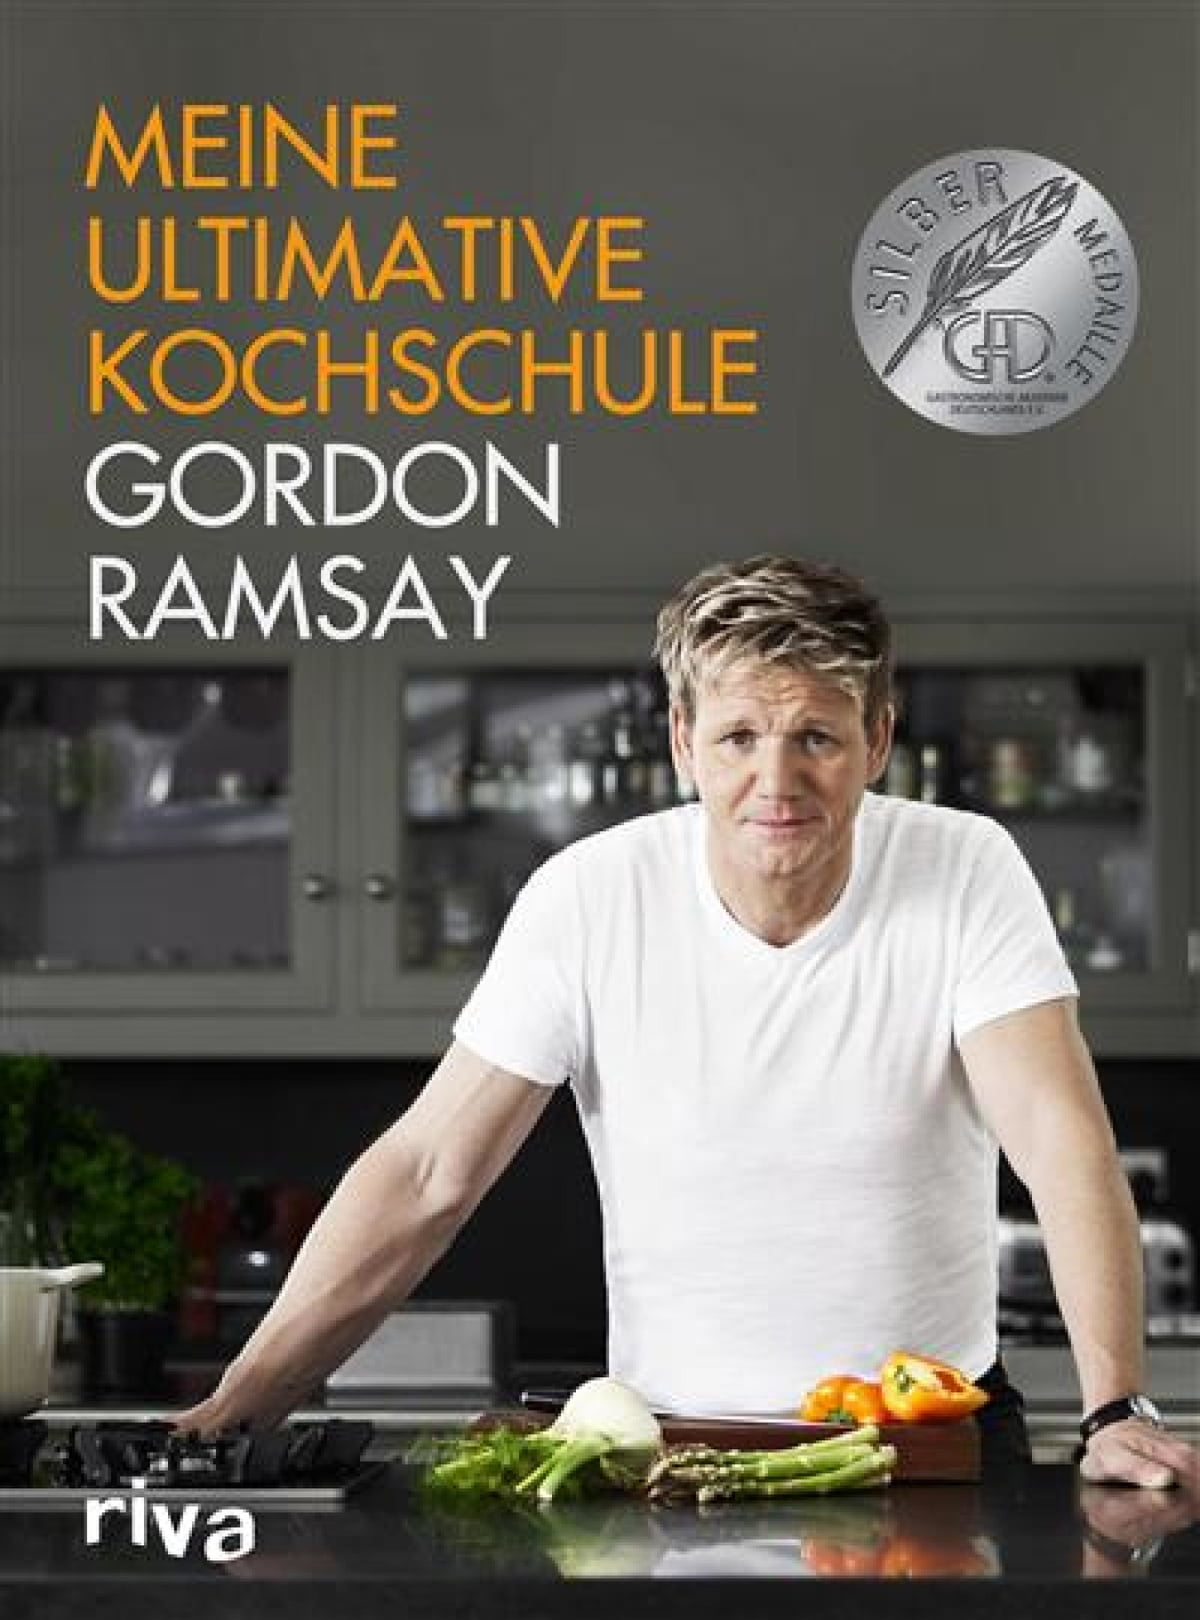 In Teufels Küche Mit Gordon Ramsay Youtube Meine Ultimative Kochschule Ebook By Gordon Ramsay Rakuten Kobo